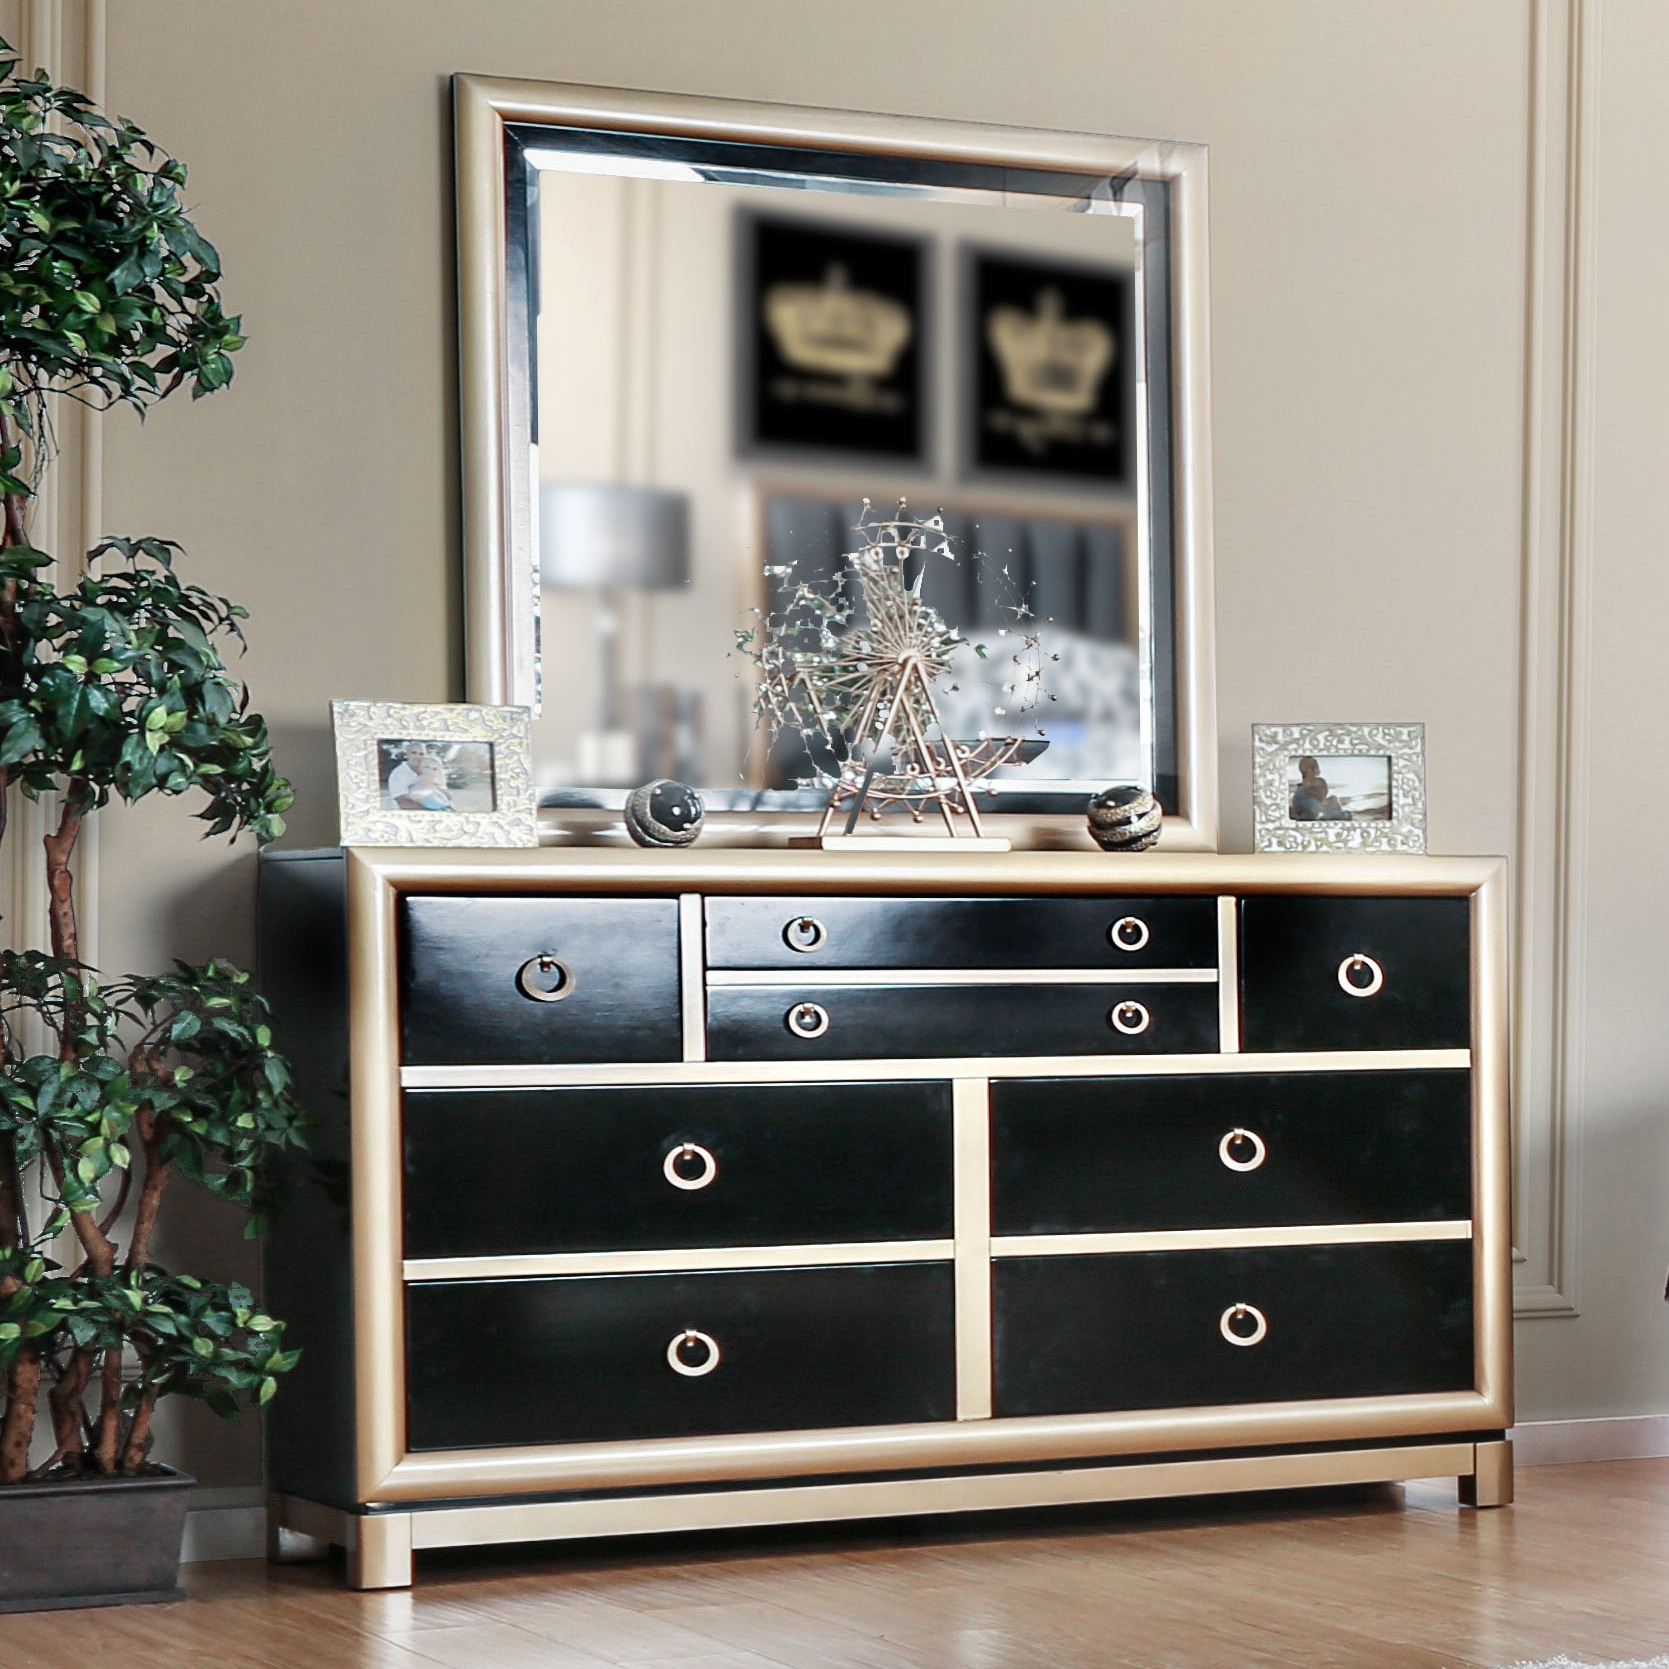 Furniture of america lopex contemporary 2 piece two tone black gold dresser and mirror set